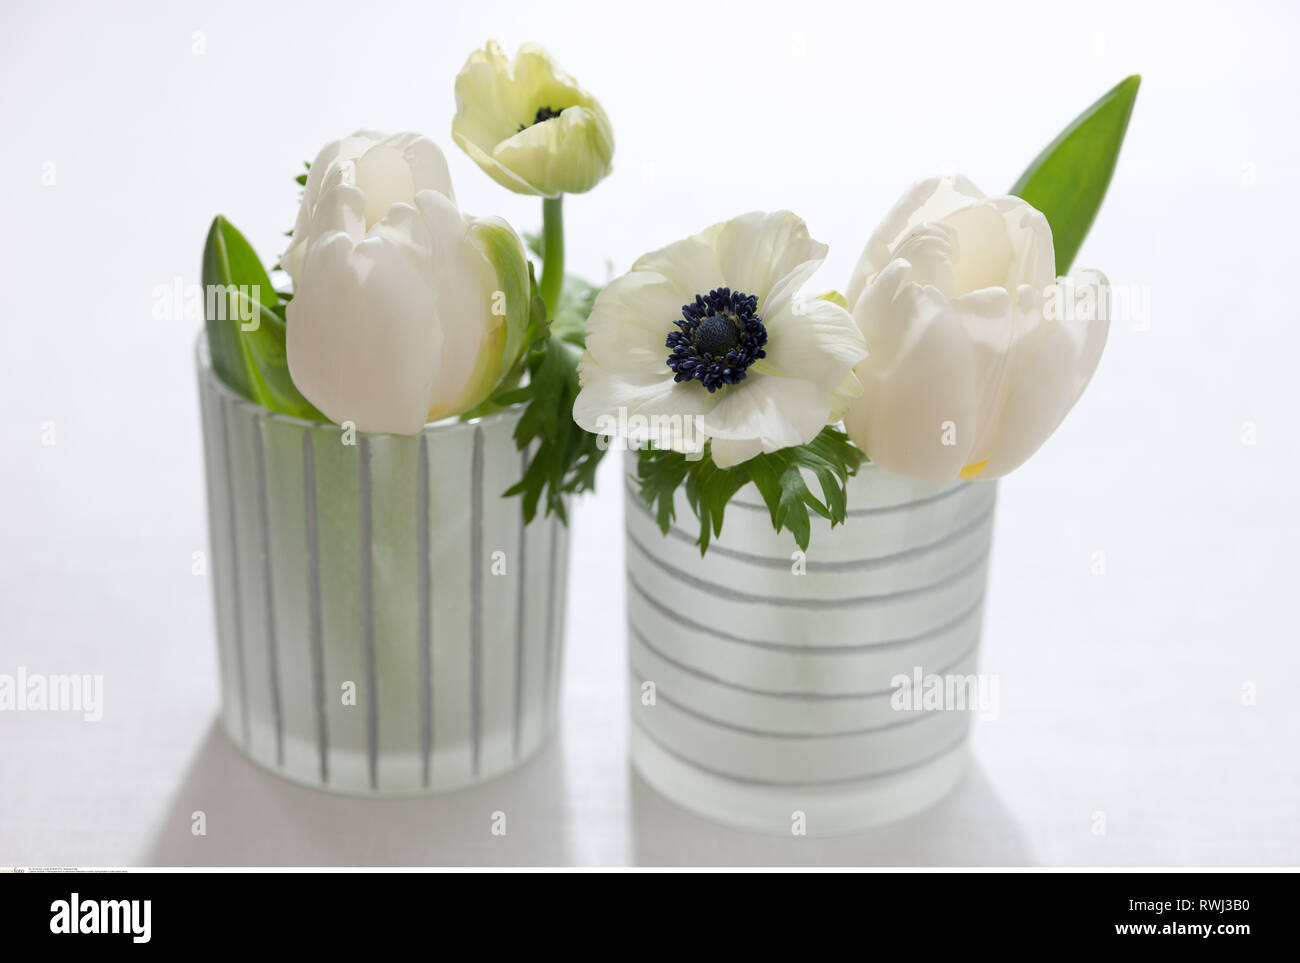 botany, spring flower in satin glass vases, Caution! For Greetingcard-Use / Postcard-Use In German Speaking Countries Certain Restrictions May Apply - Stock Image